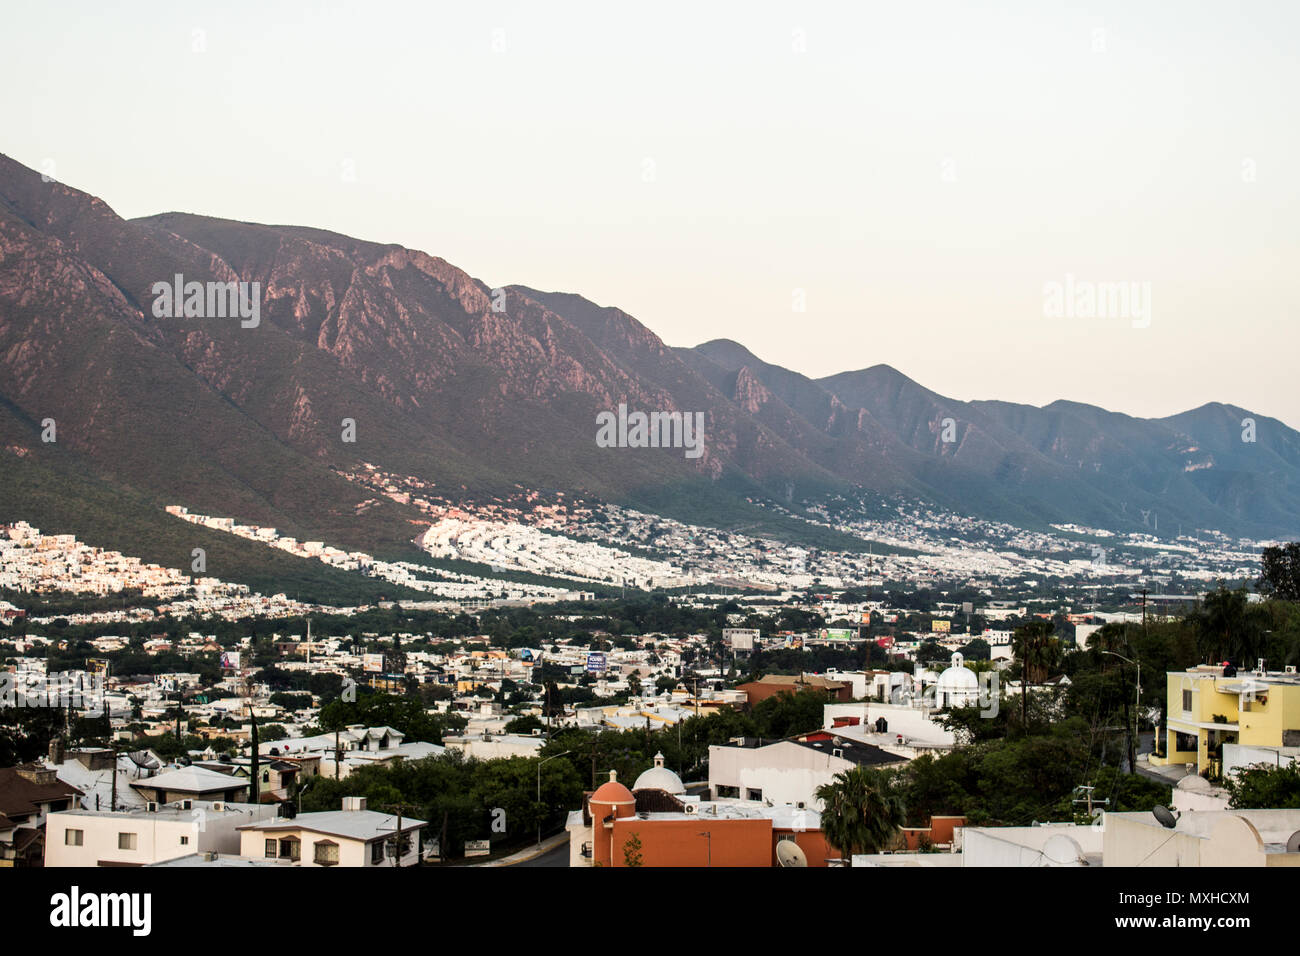 South part of the city of Monterrey, Nuevo Leon, Mexico. - Stock Image